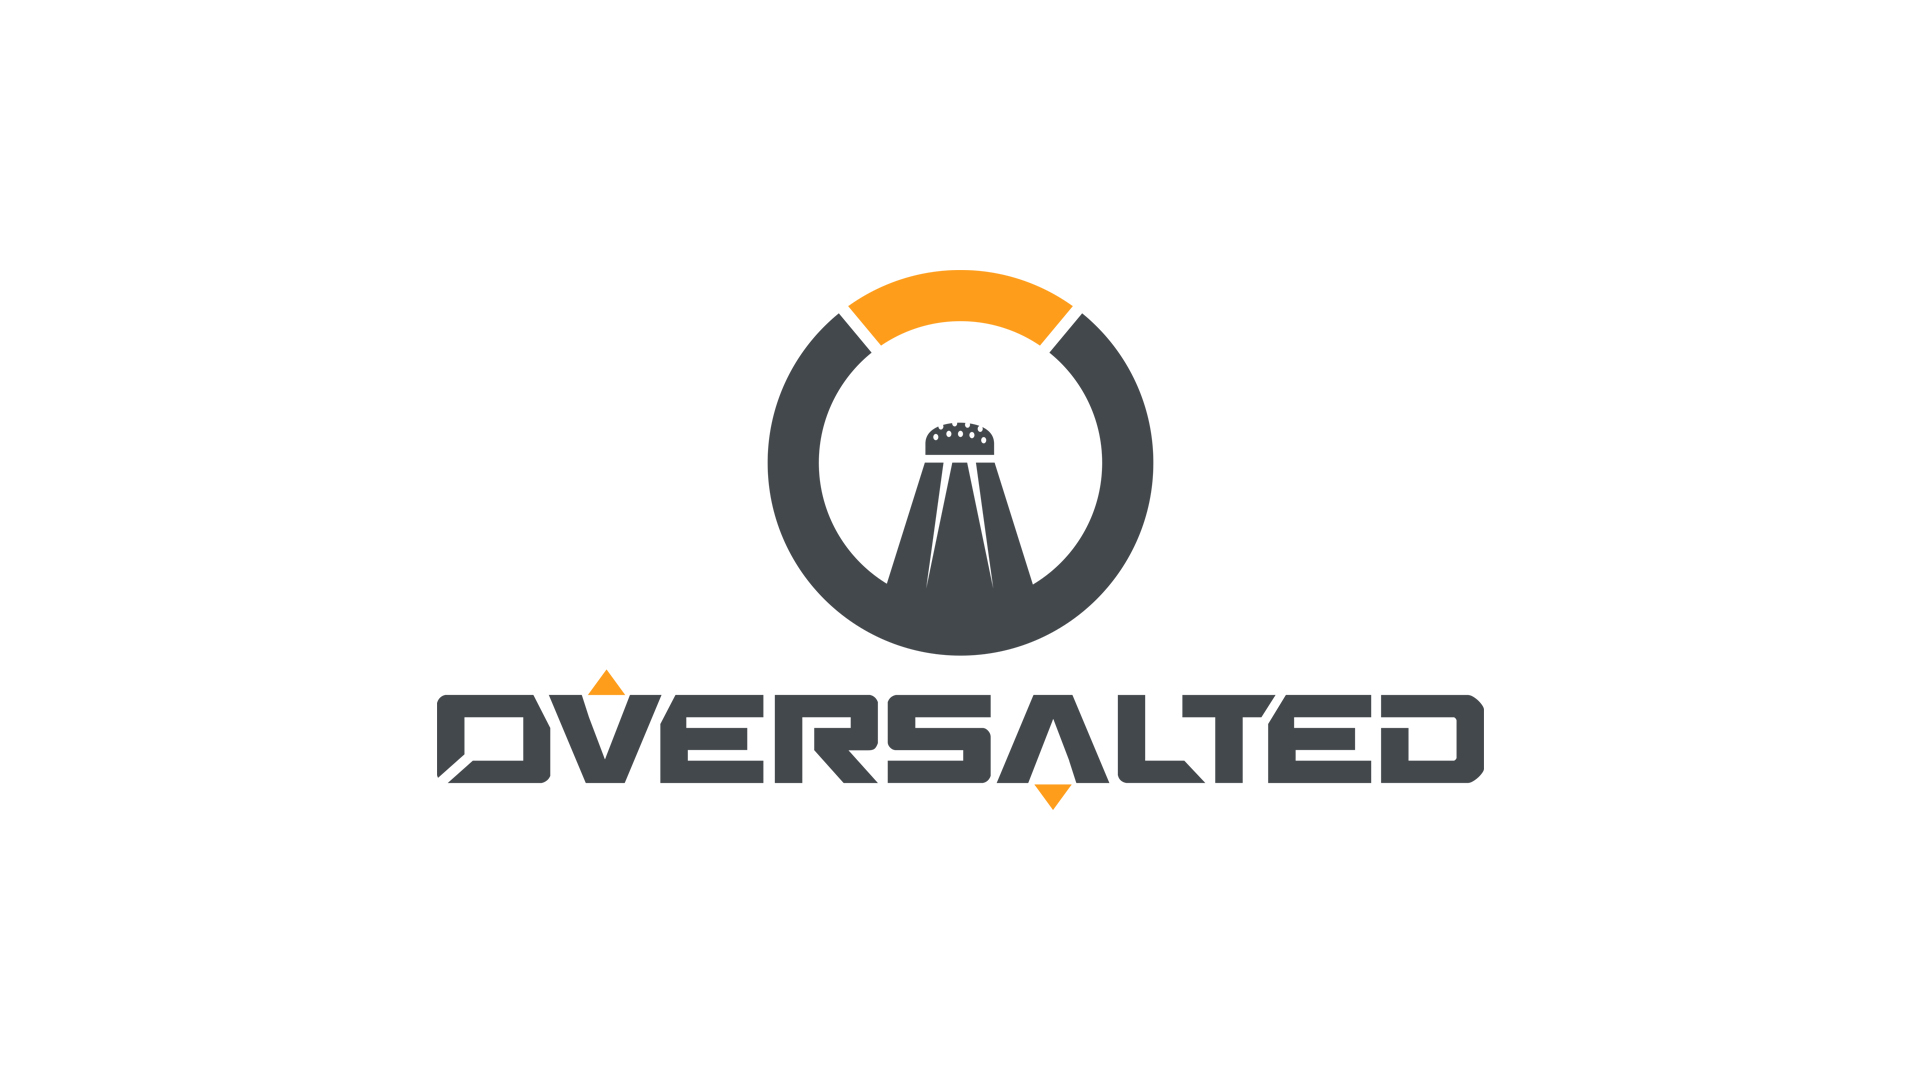 Oversalted Logo Wallpaper